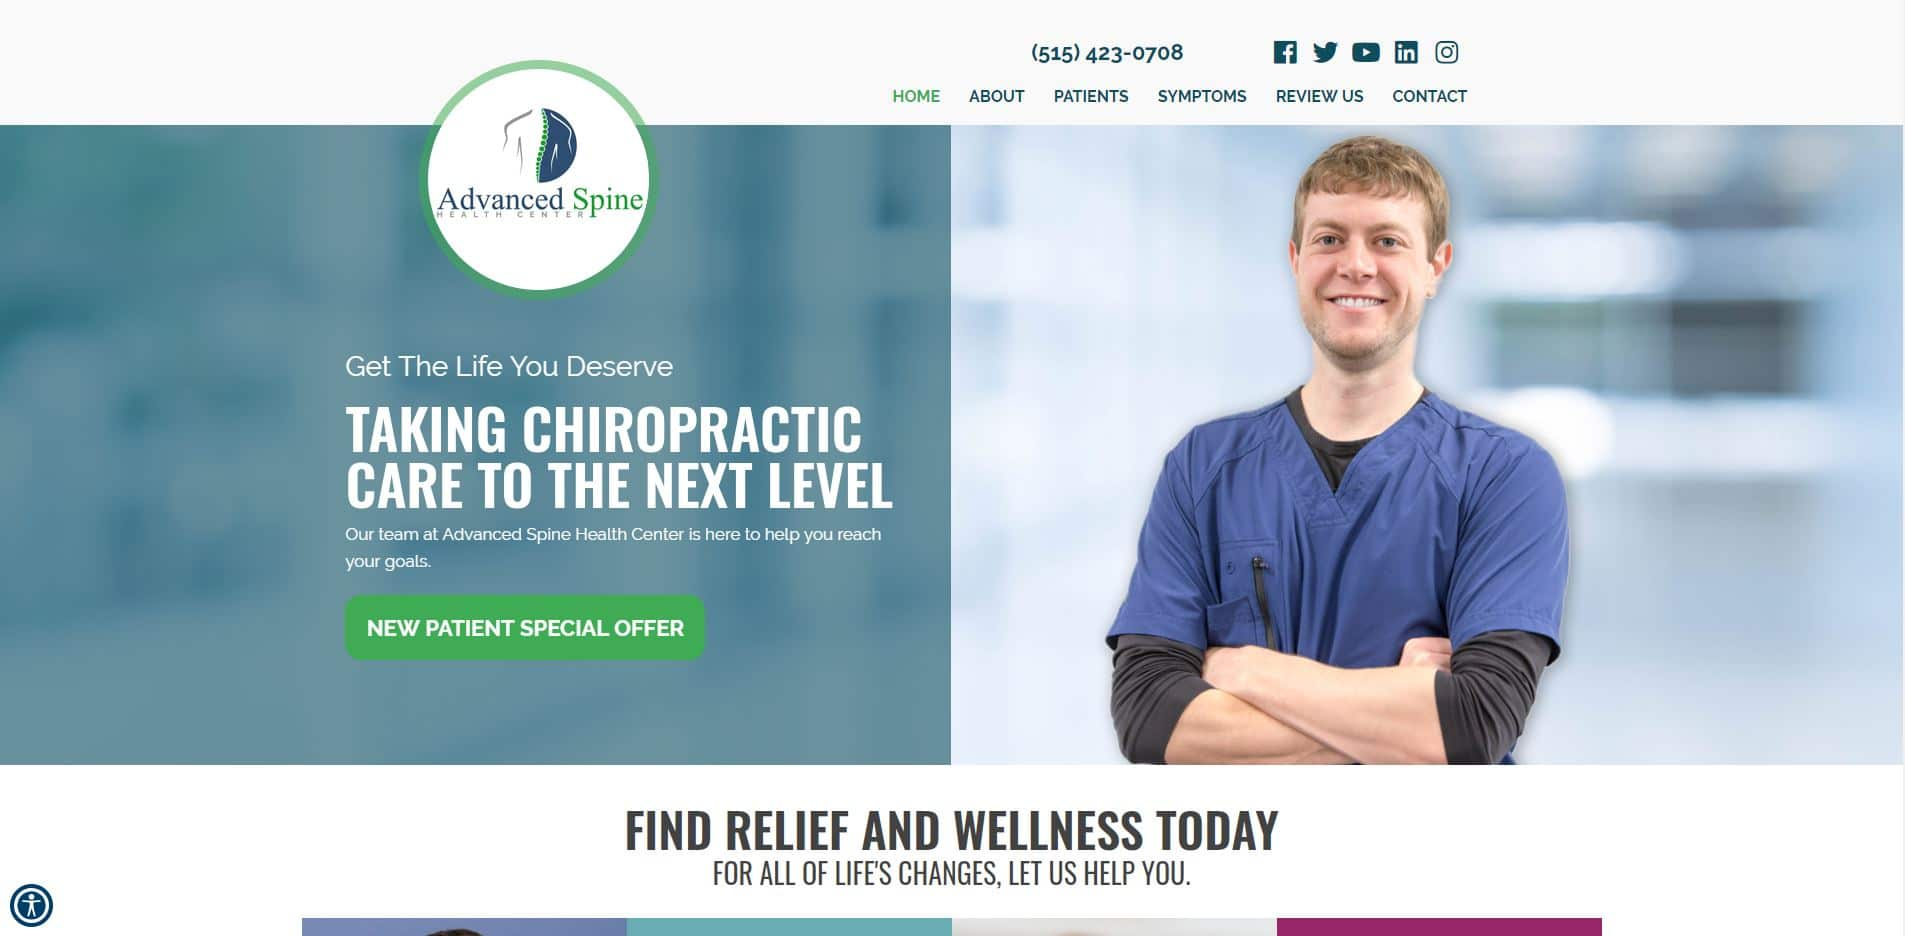 Chiropractor in Urbandale